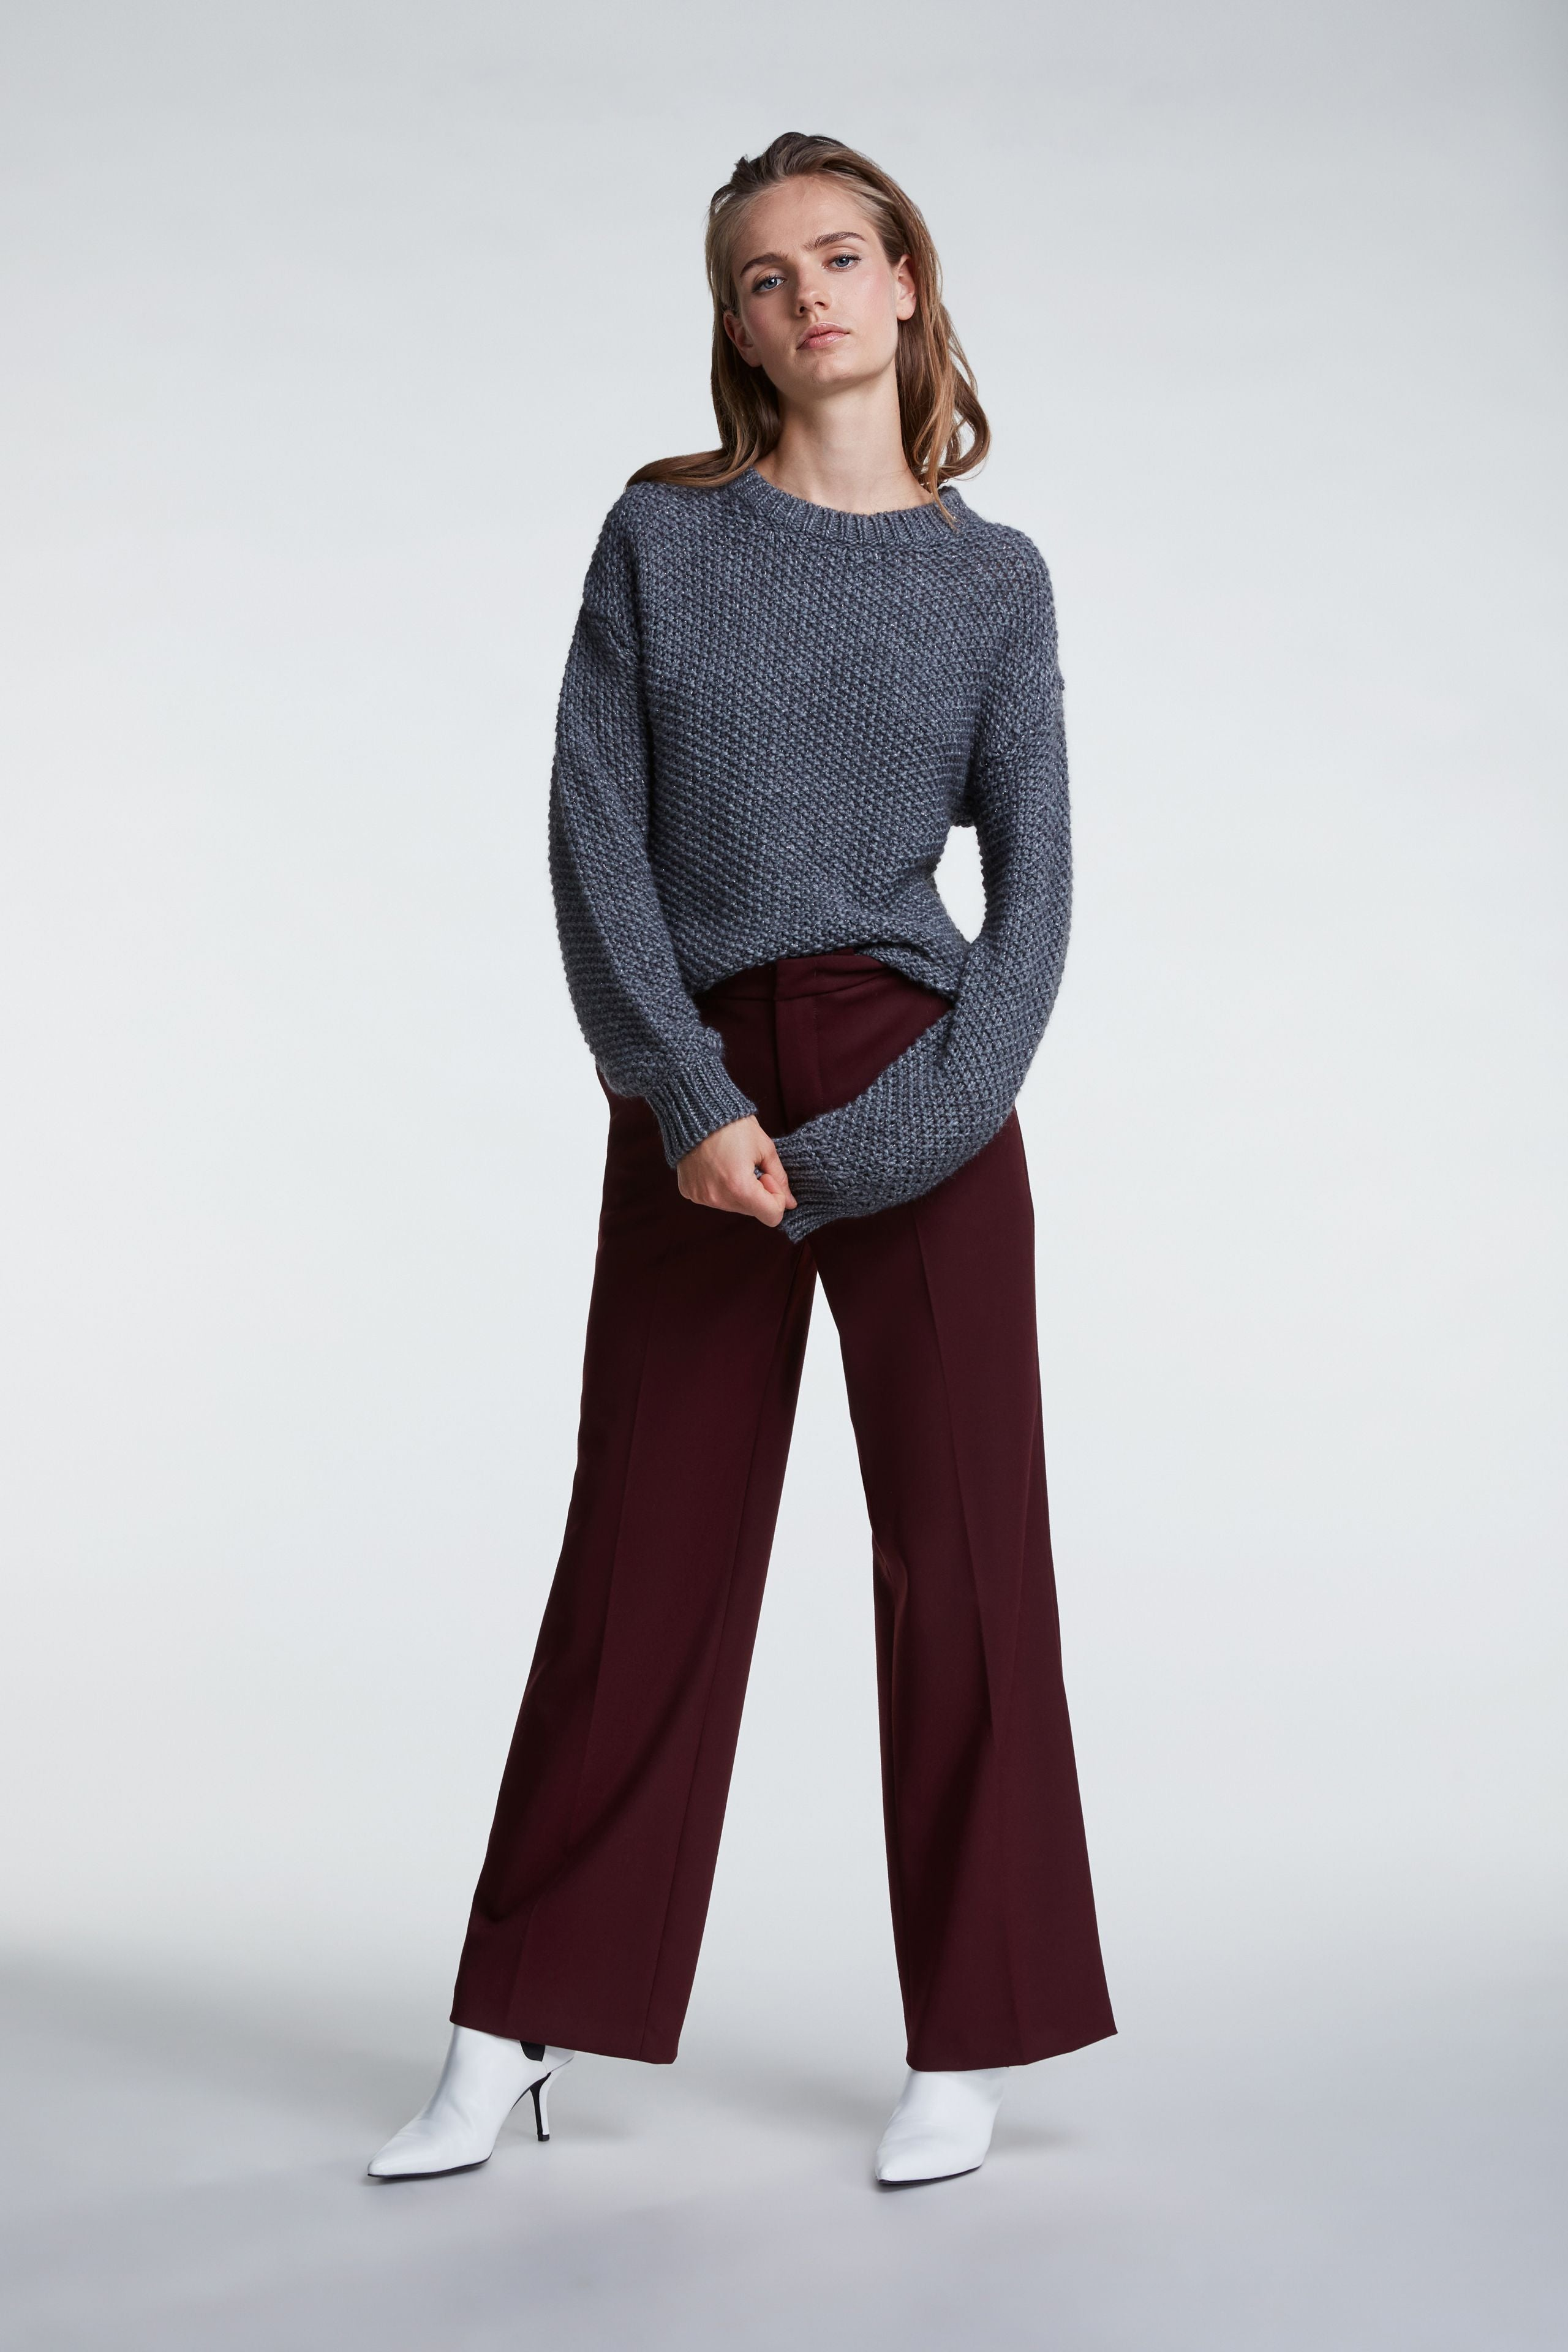 Set trousers are available to buy from Damsel in London